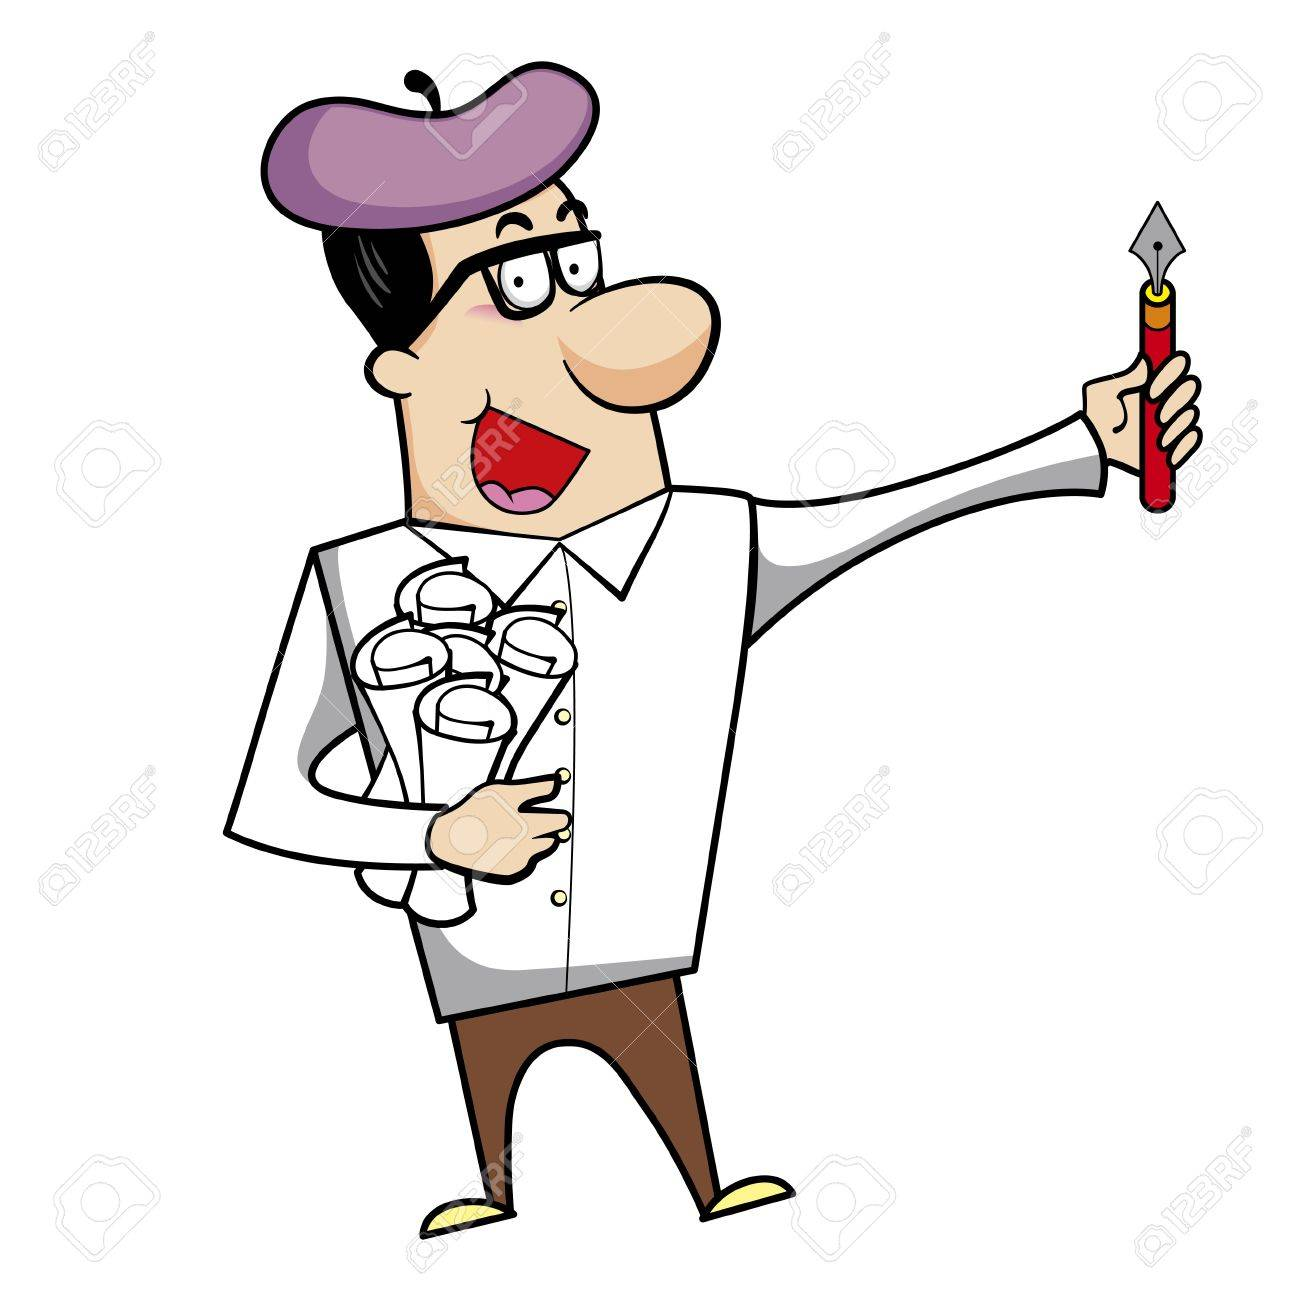 Cartoon artist with pen and paper vector illustration. Stock Vector - 18376575